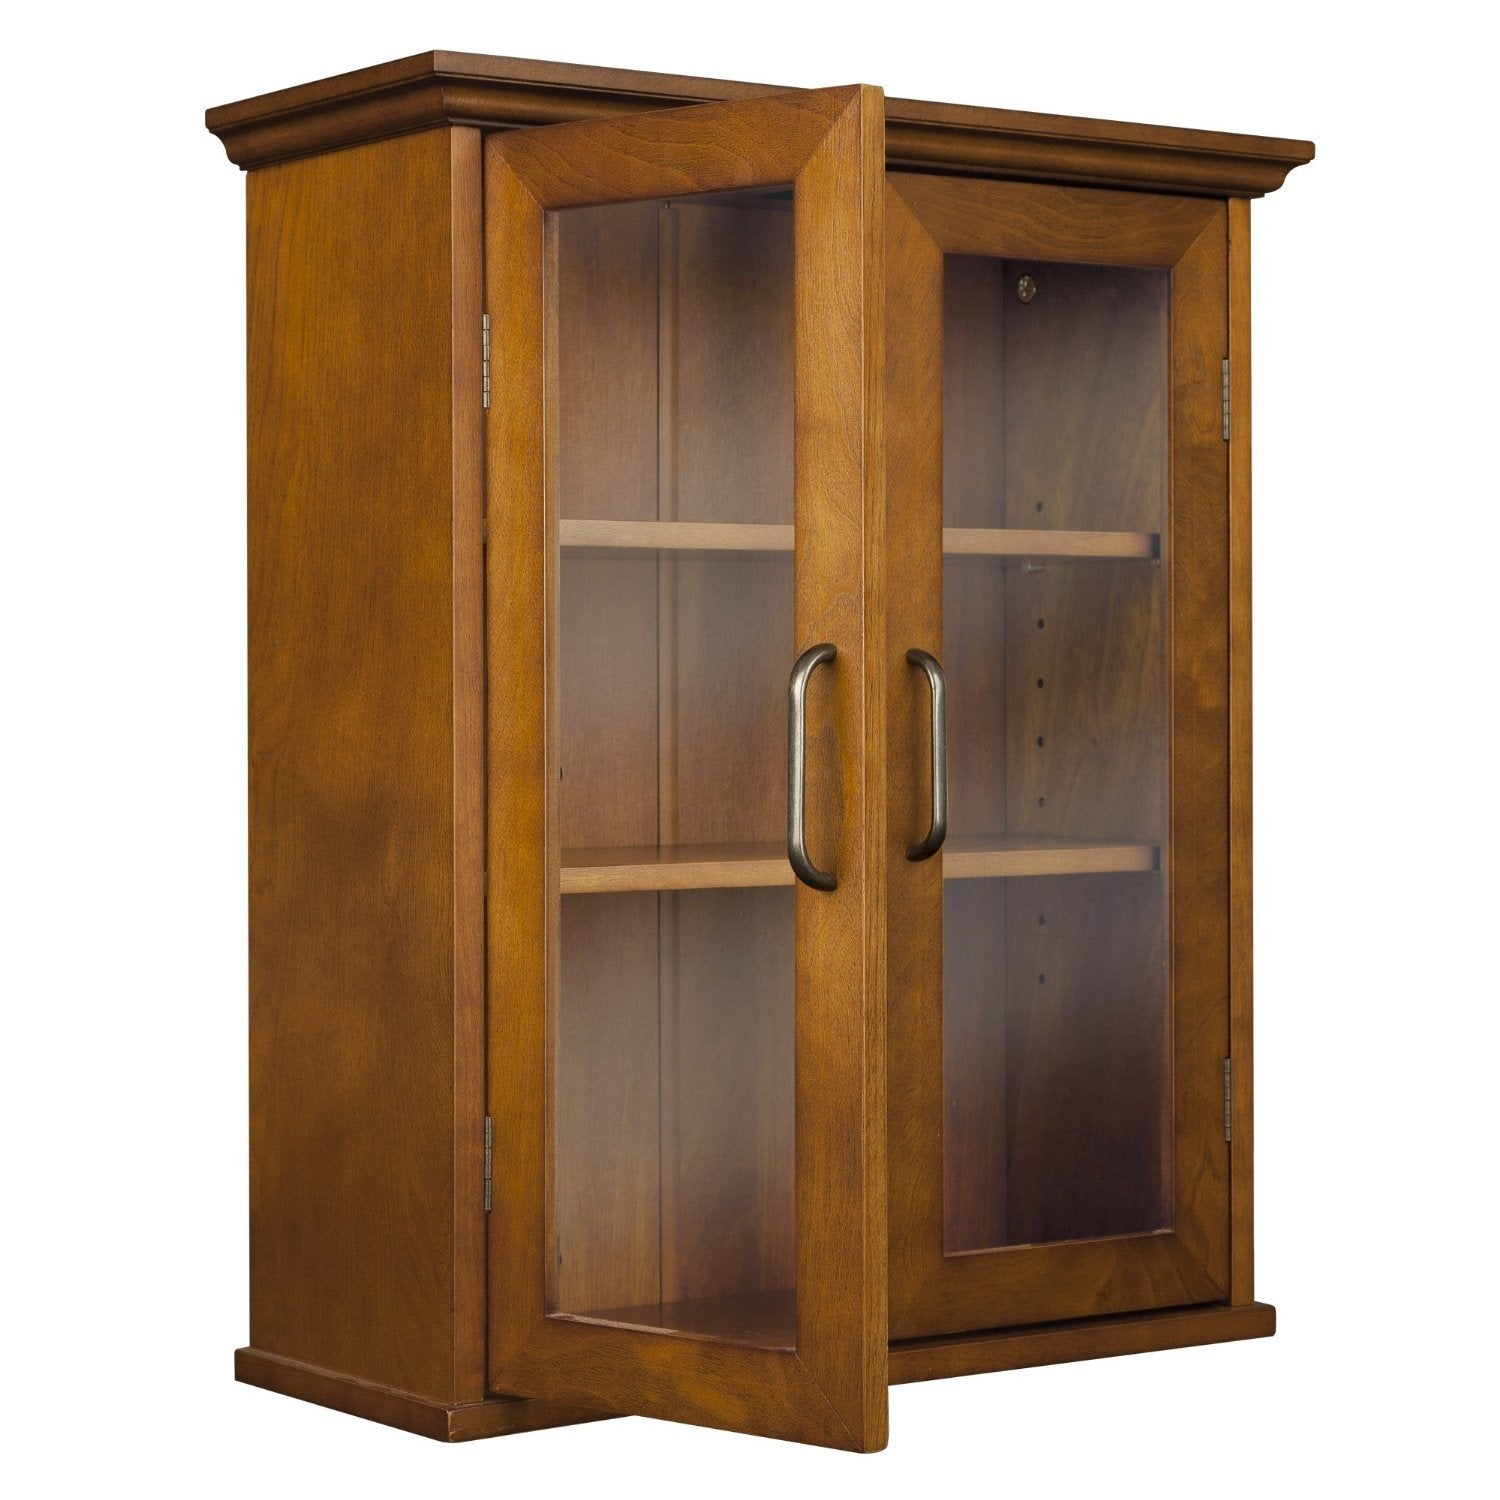 Oak Finish Bathroom Wall Cabinet with Glass  2-Doors & Shelves